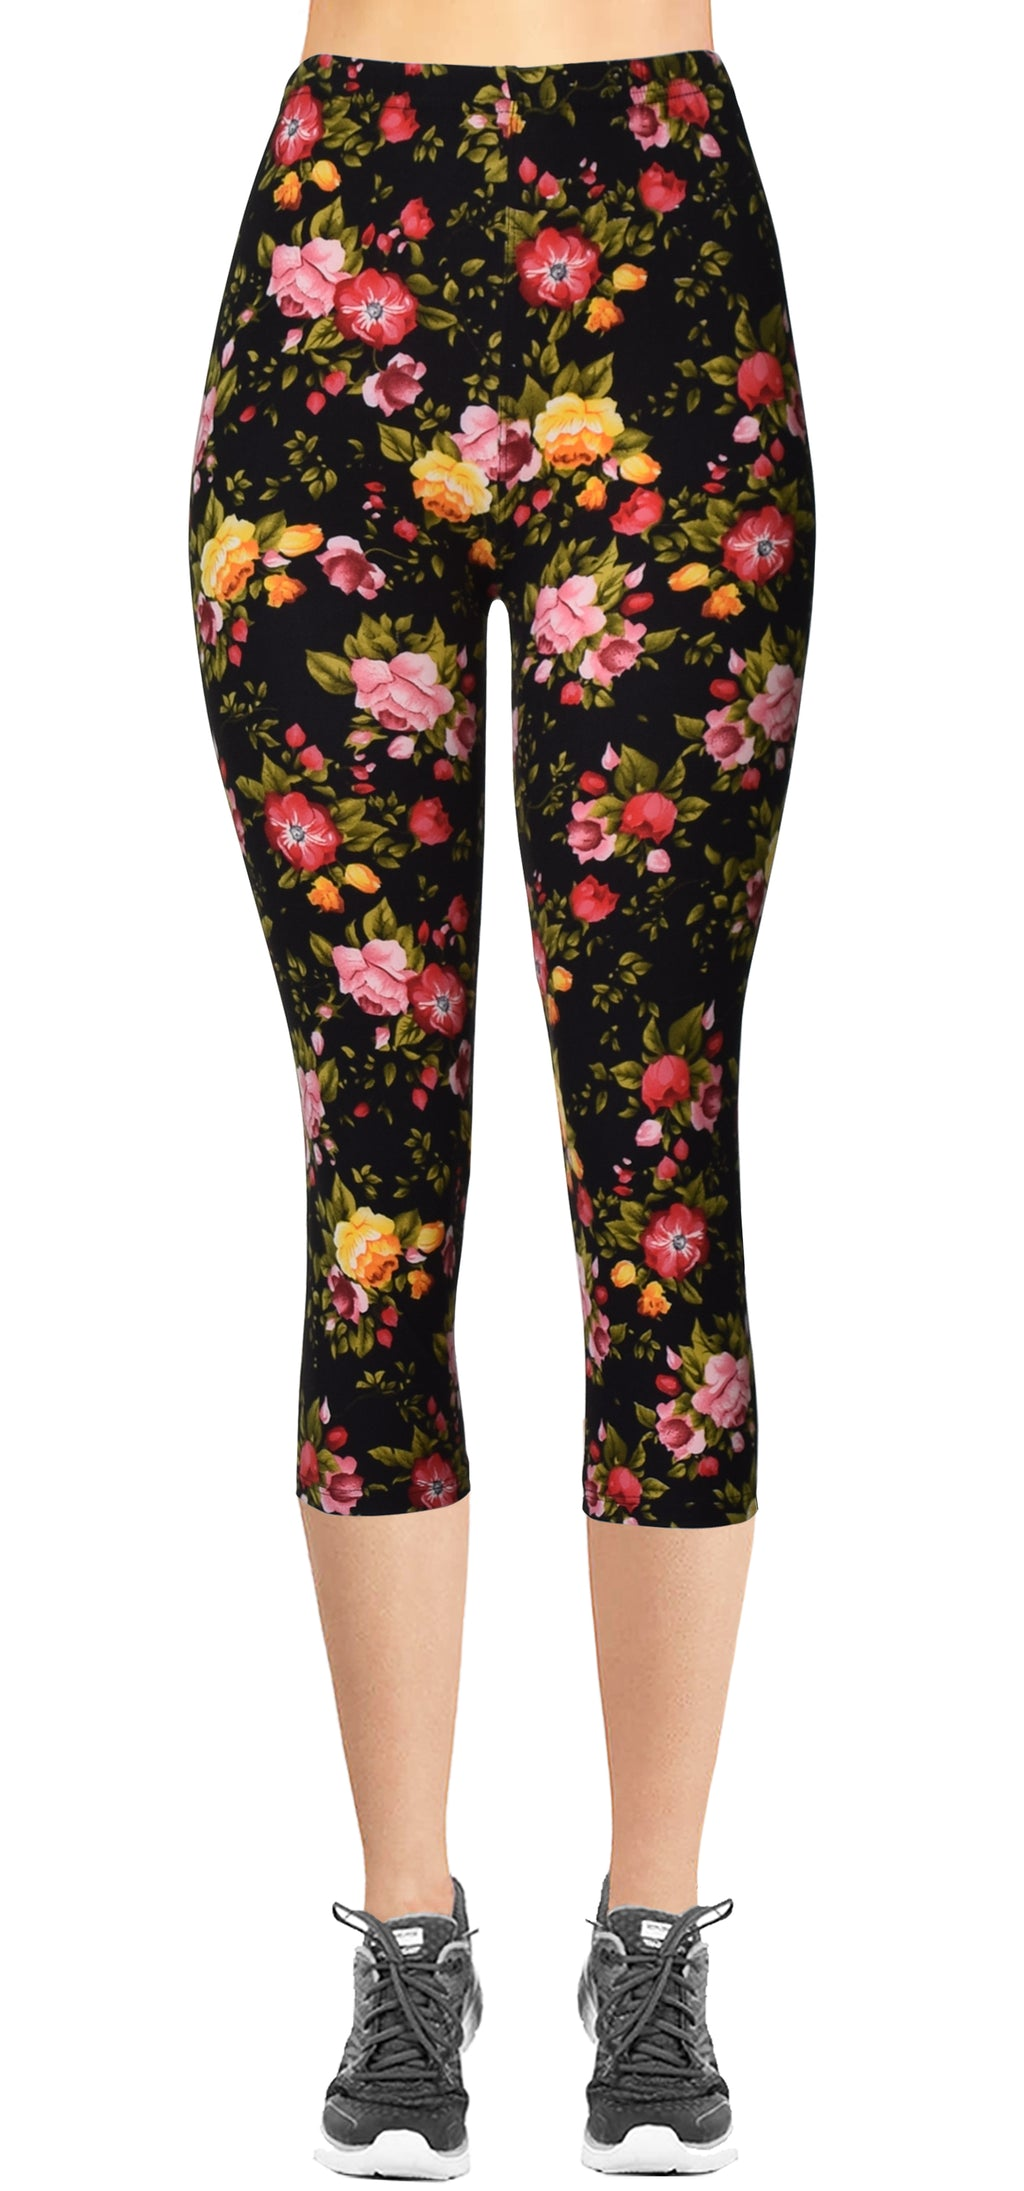 Printed Capris Leggings - Pink Yellow Red Rose